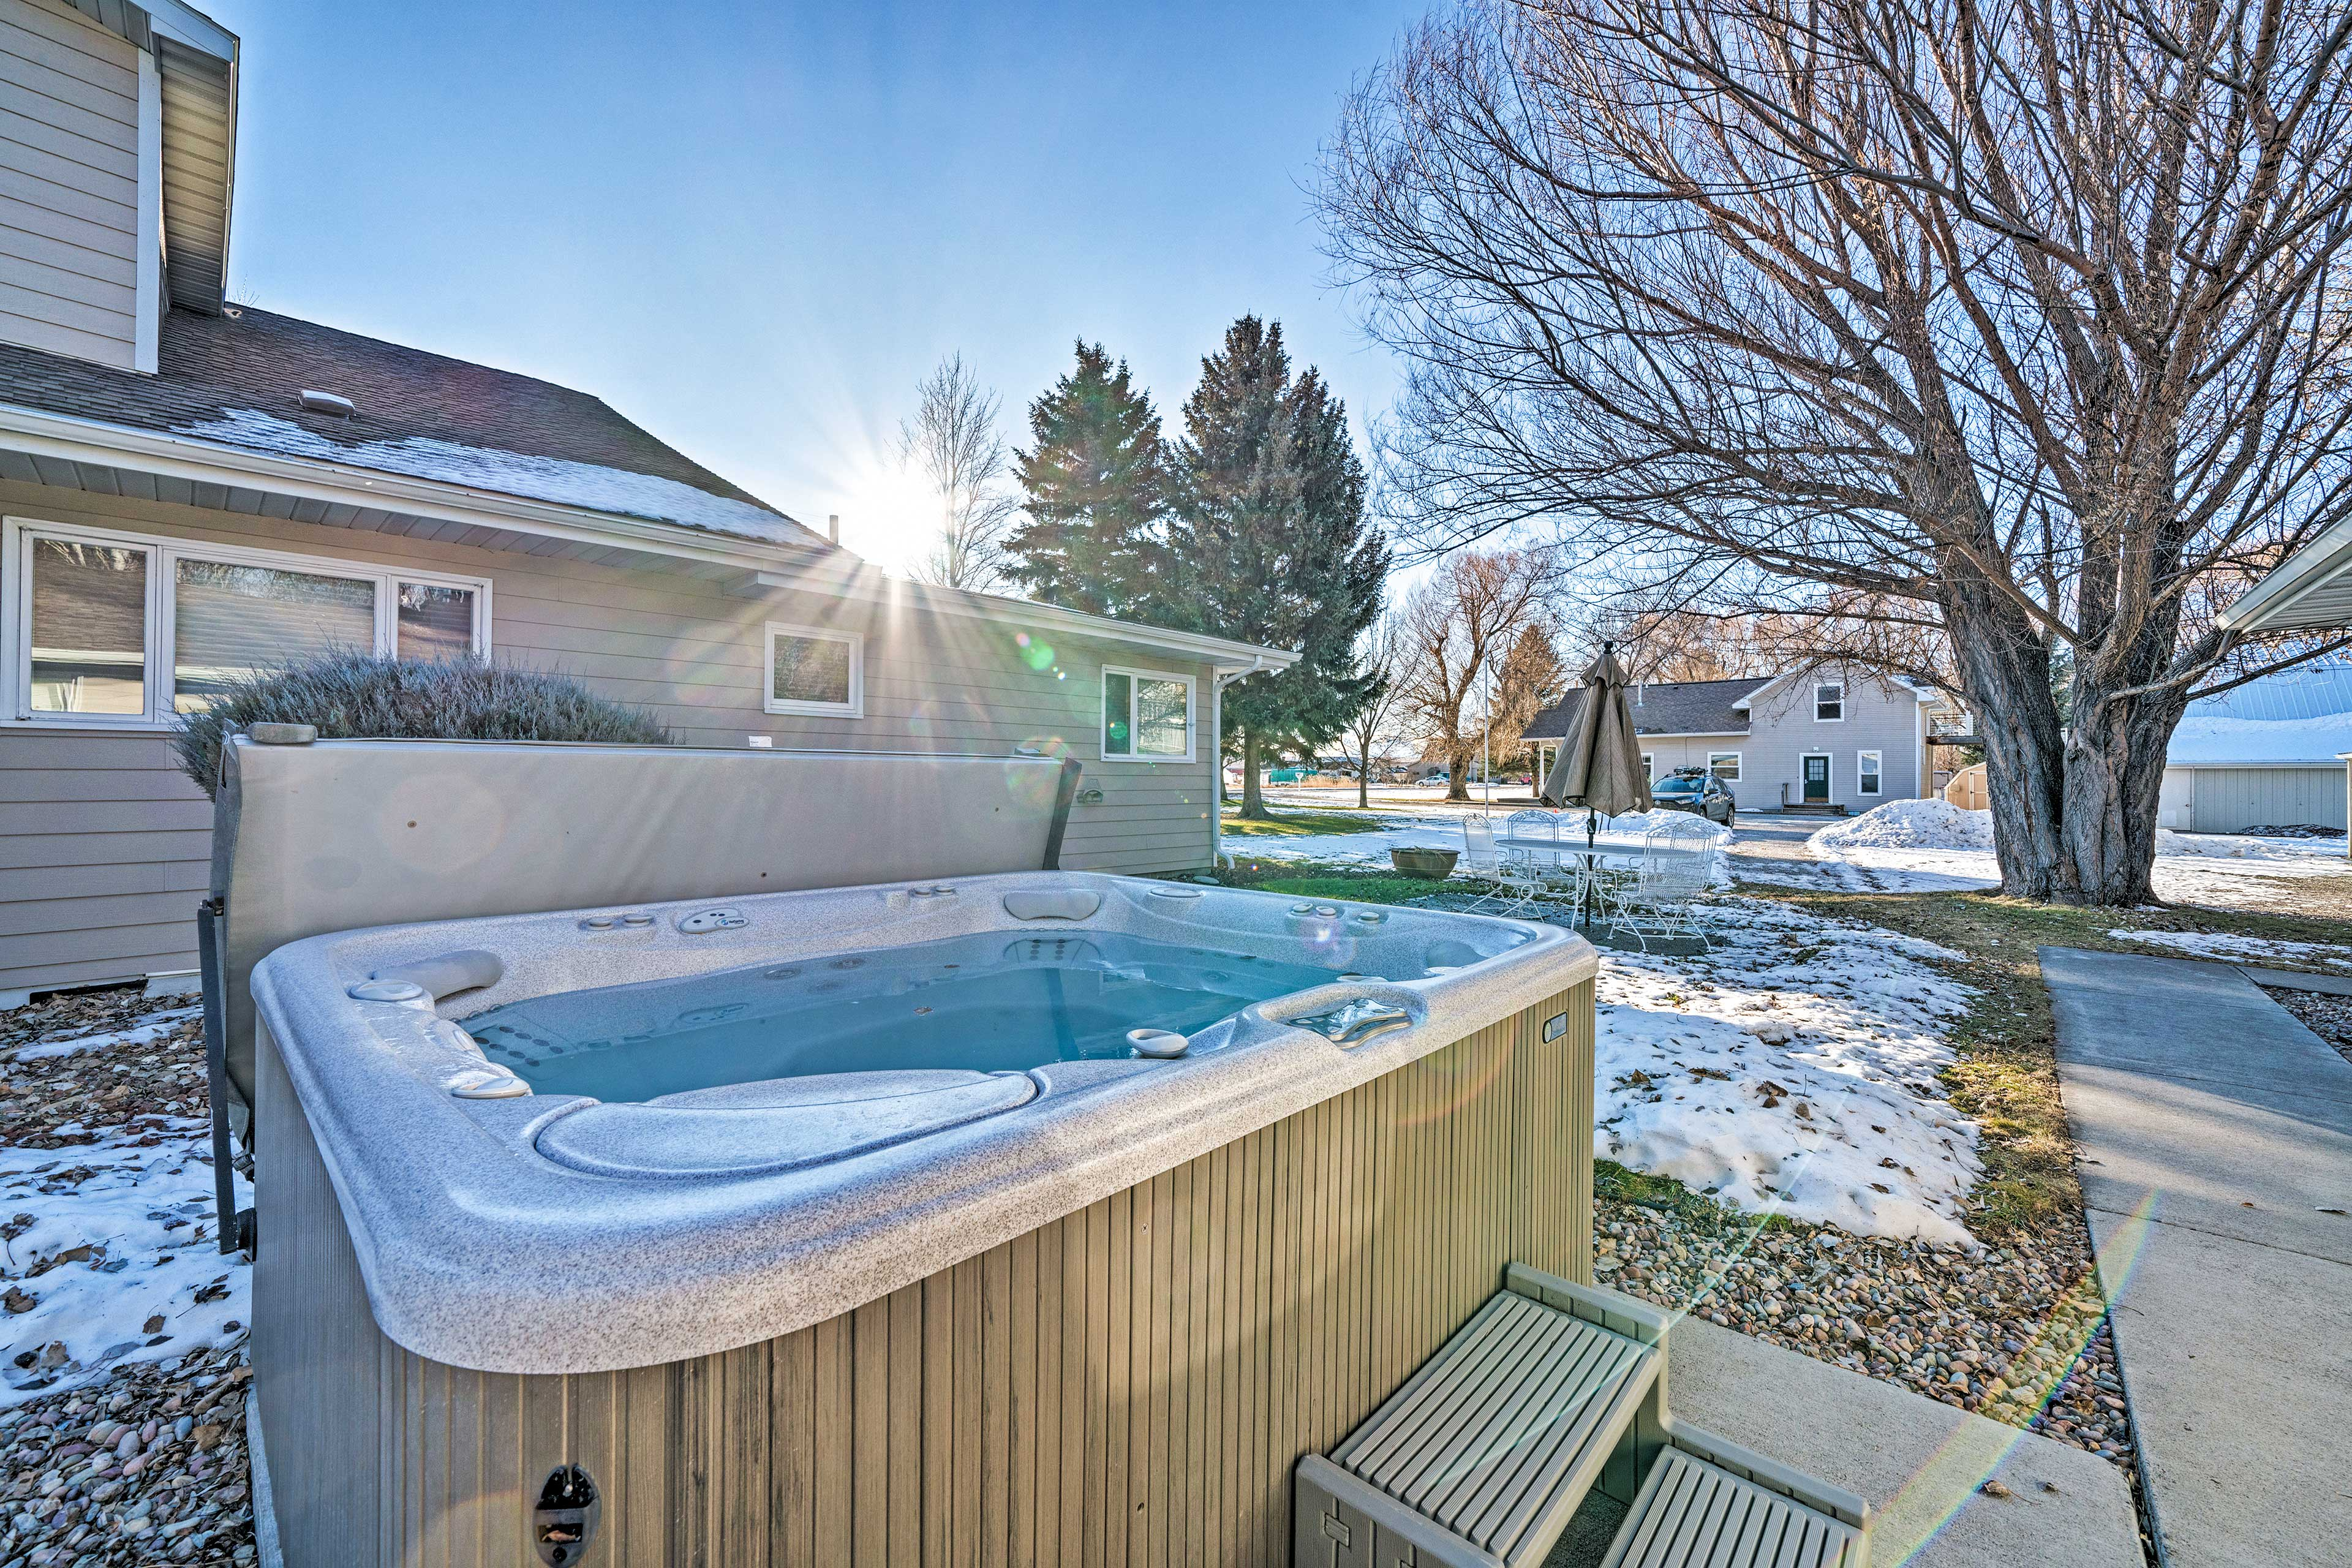 Hop in the hot tub any day of the year for an enjoyable soak!